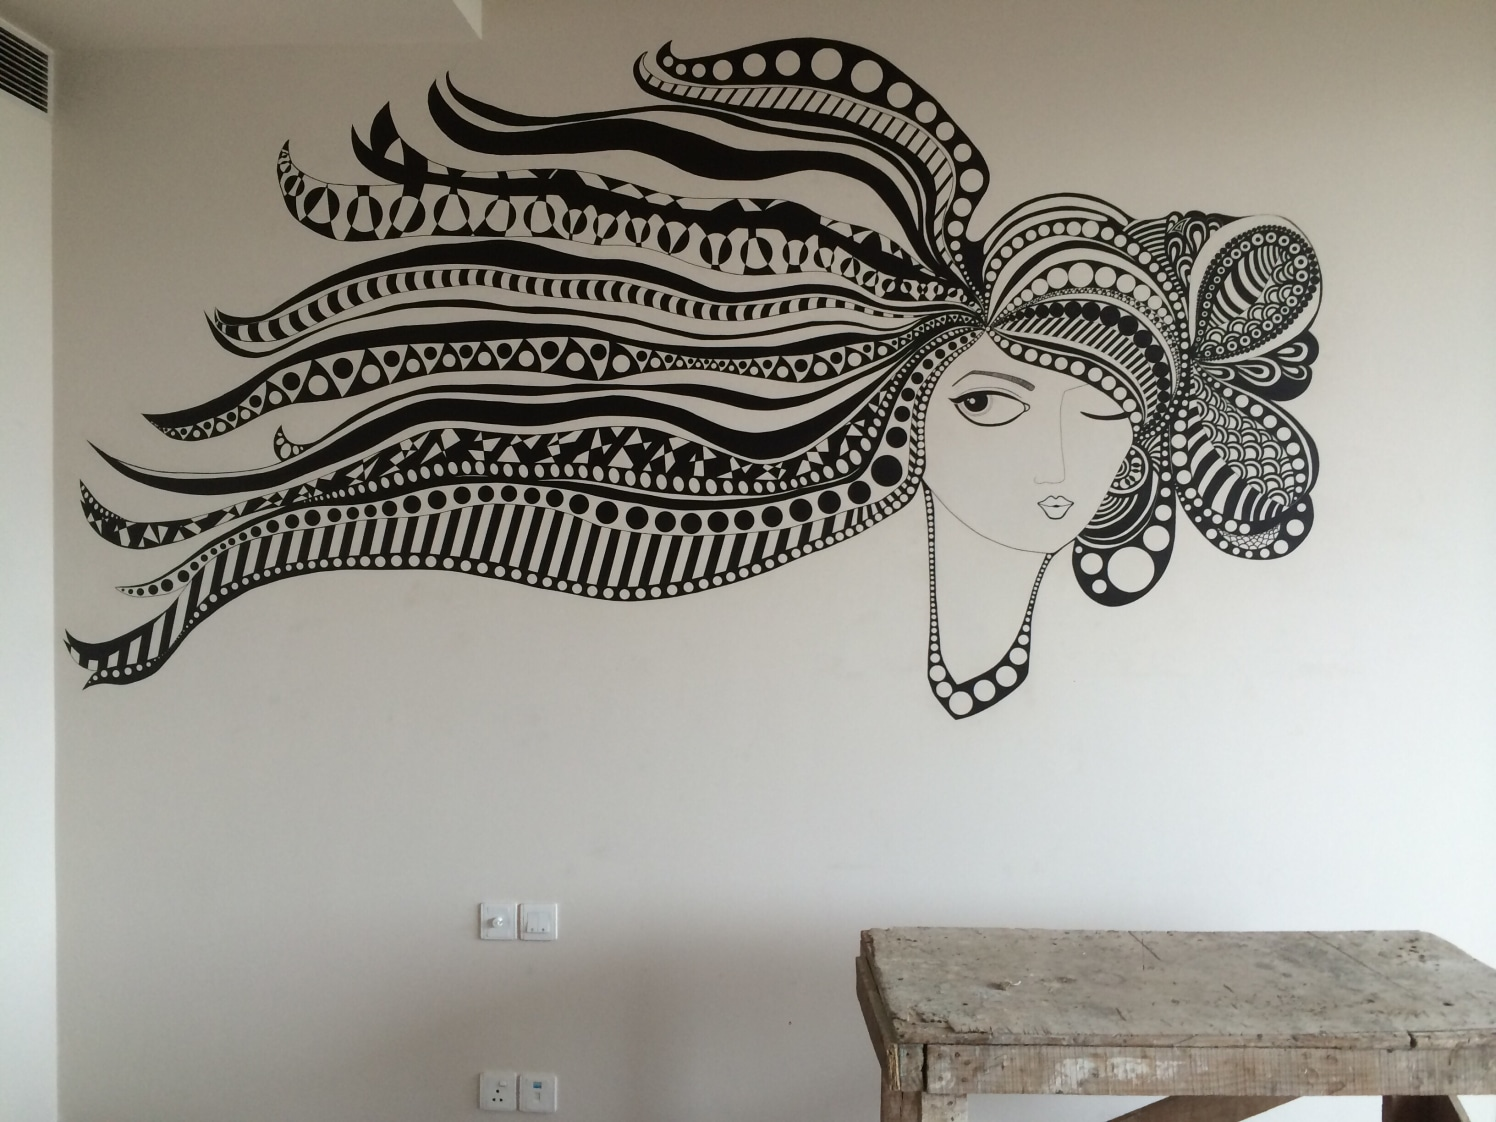 Doodle on the wall by Aakriti Chand